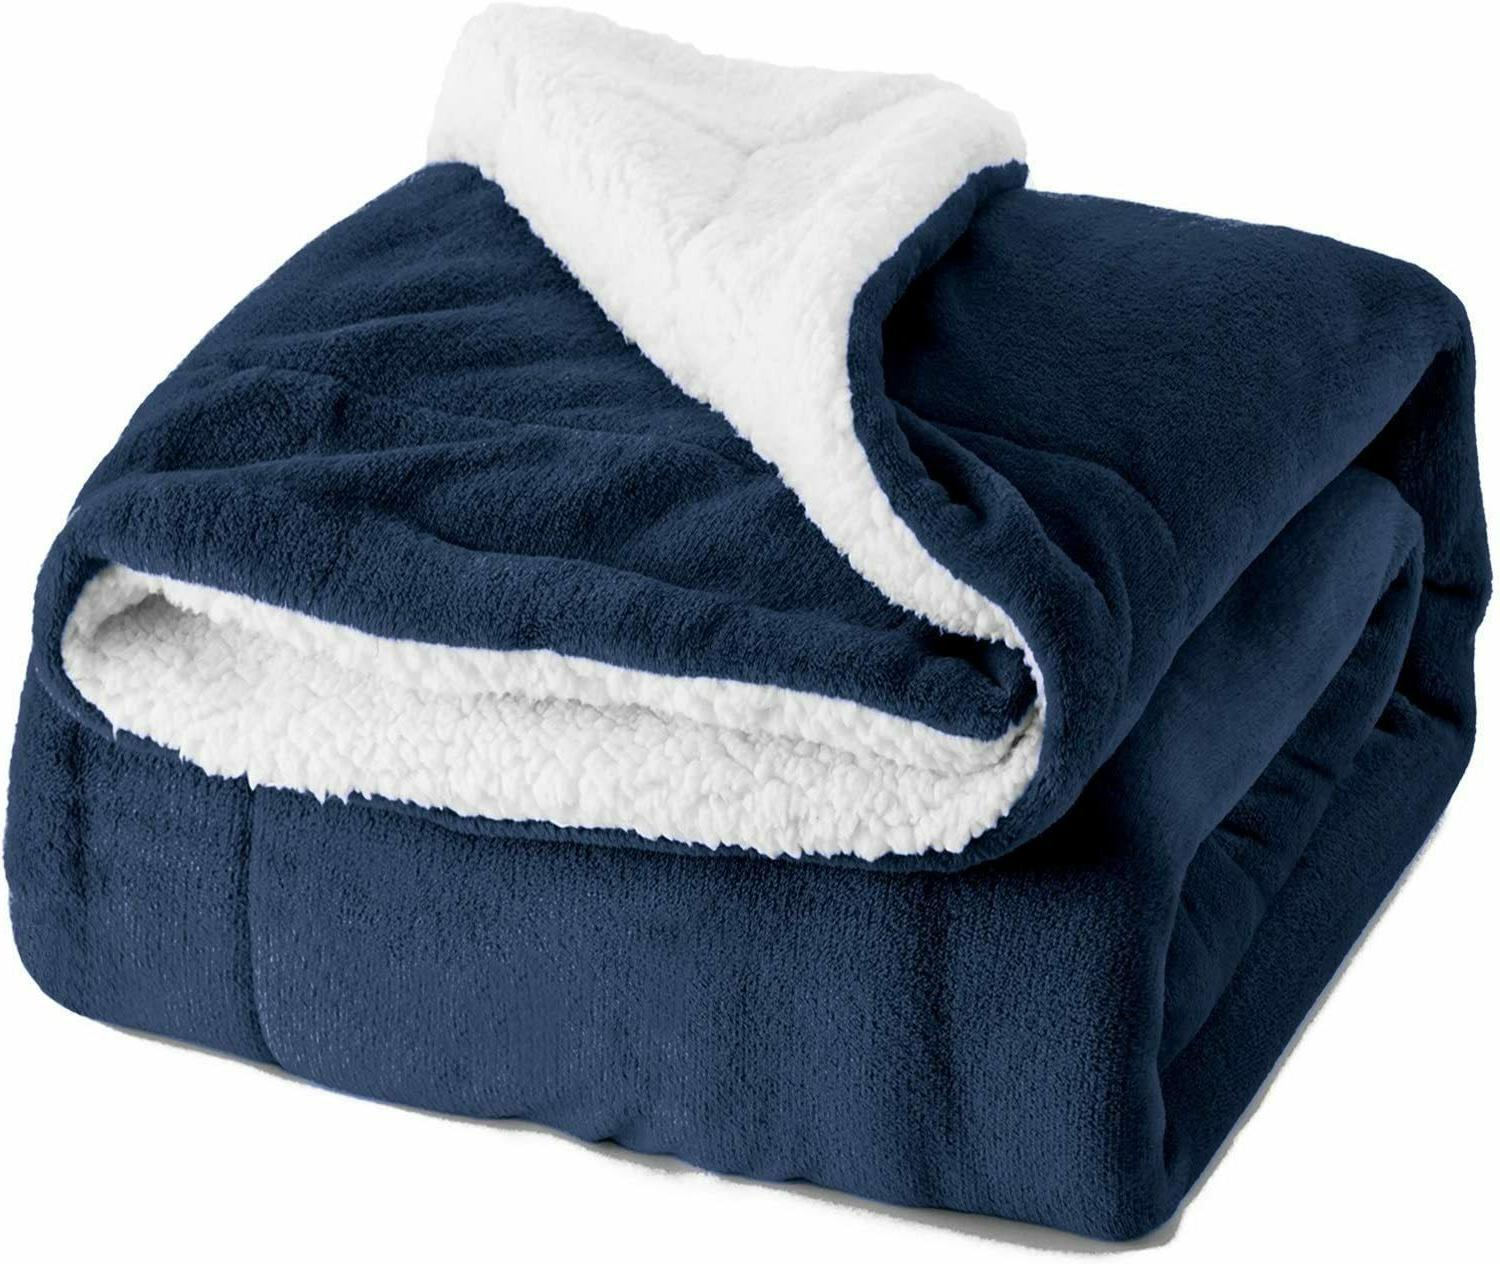 sherpa fleece blanket throw size navy blue